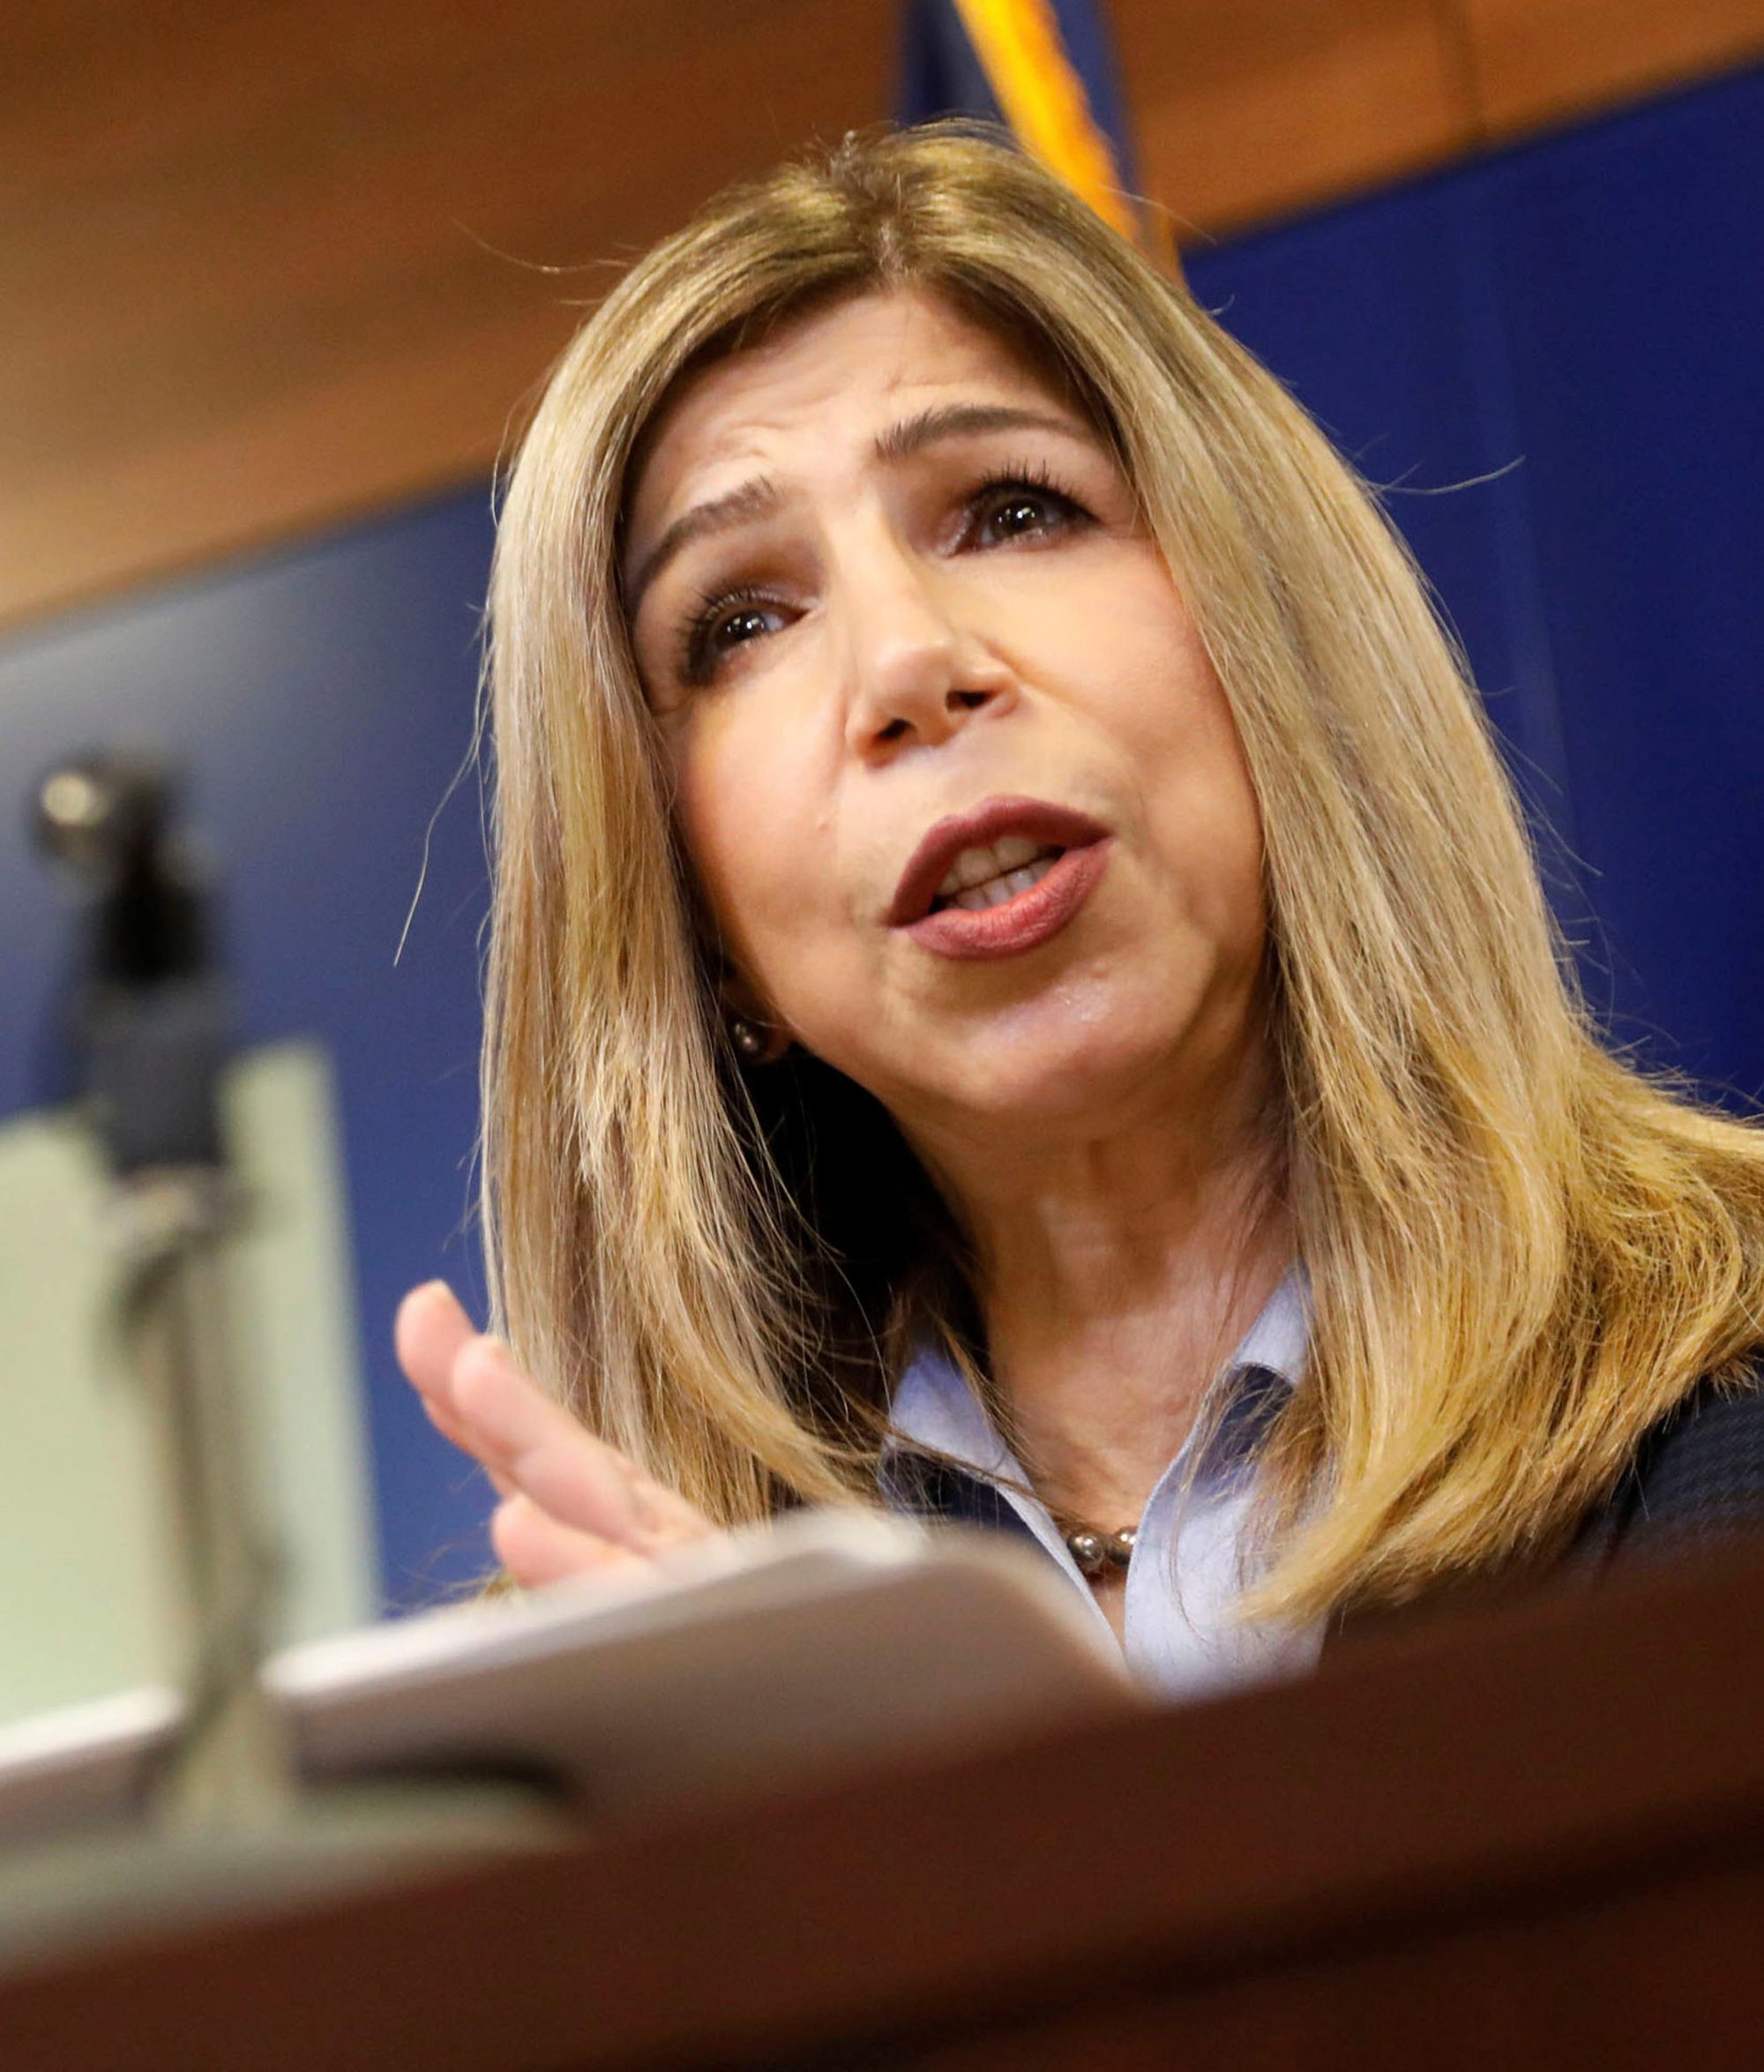 Some district attorneys, including San Diego District Attorney Summer Stephan, have publicly pushed back on sentencing reductions.